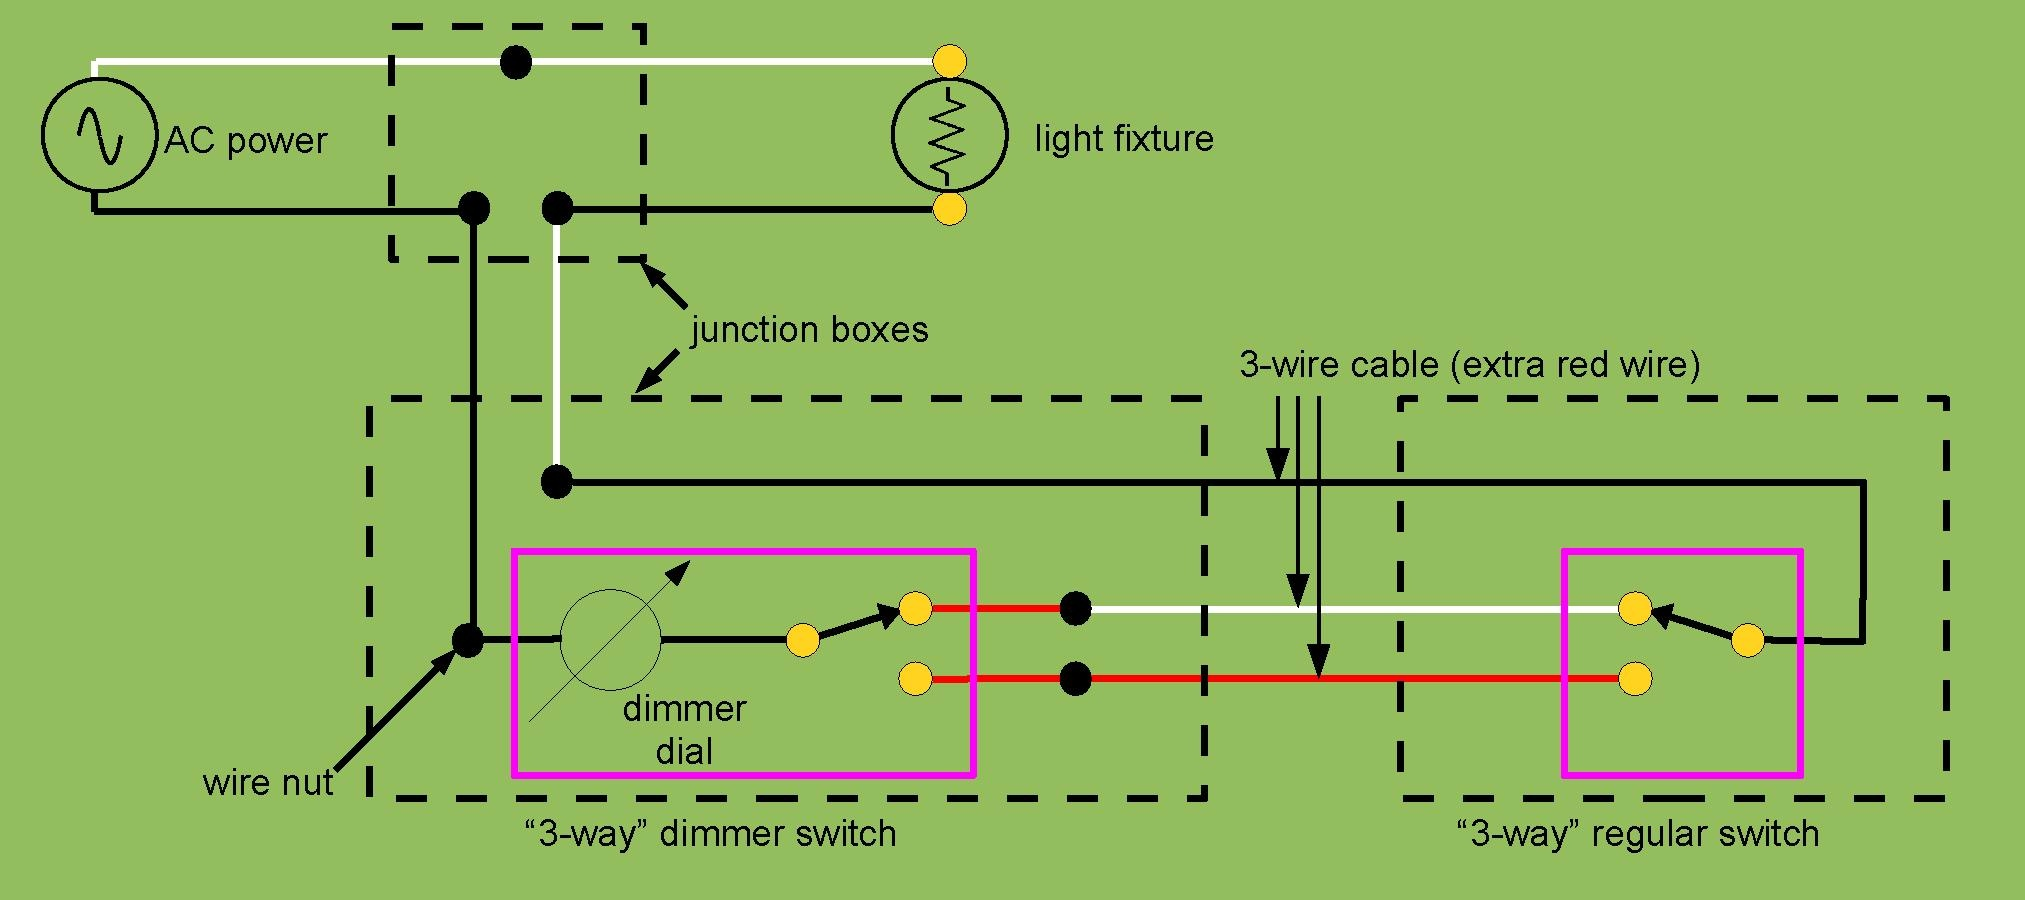 file 3 way dimmer switch wiring pdf wikimedia commons rh commons wikimedia org